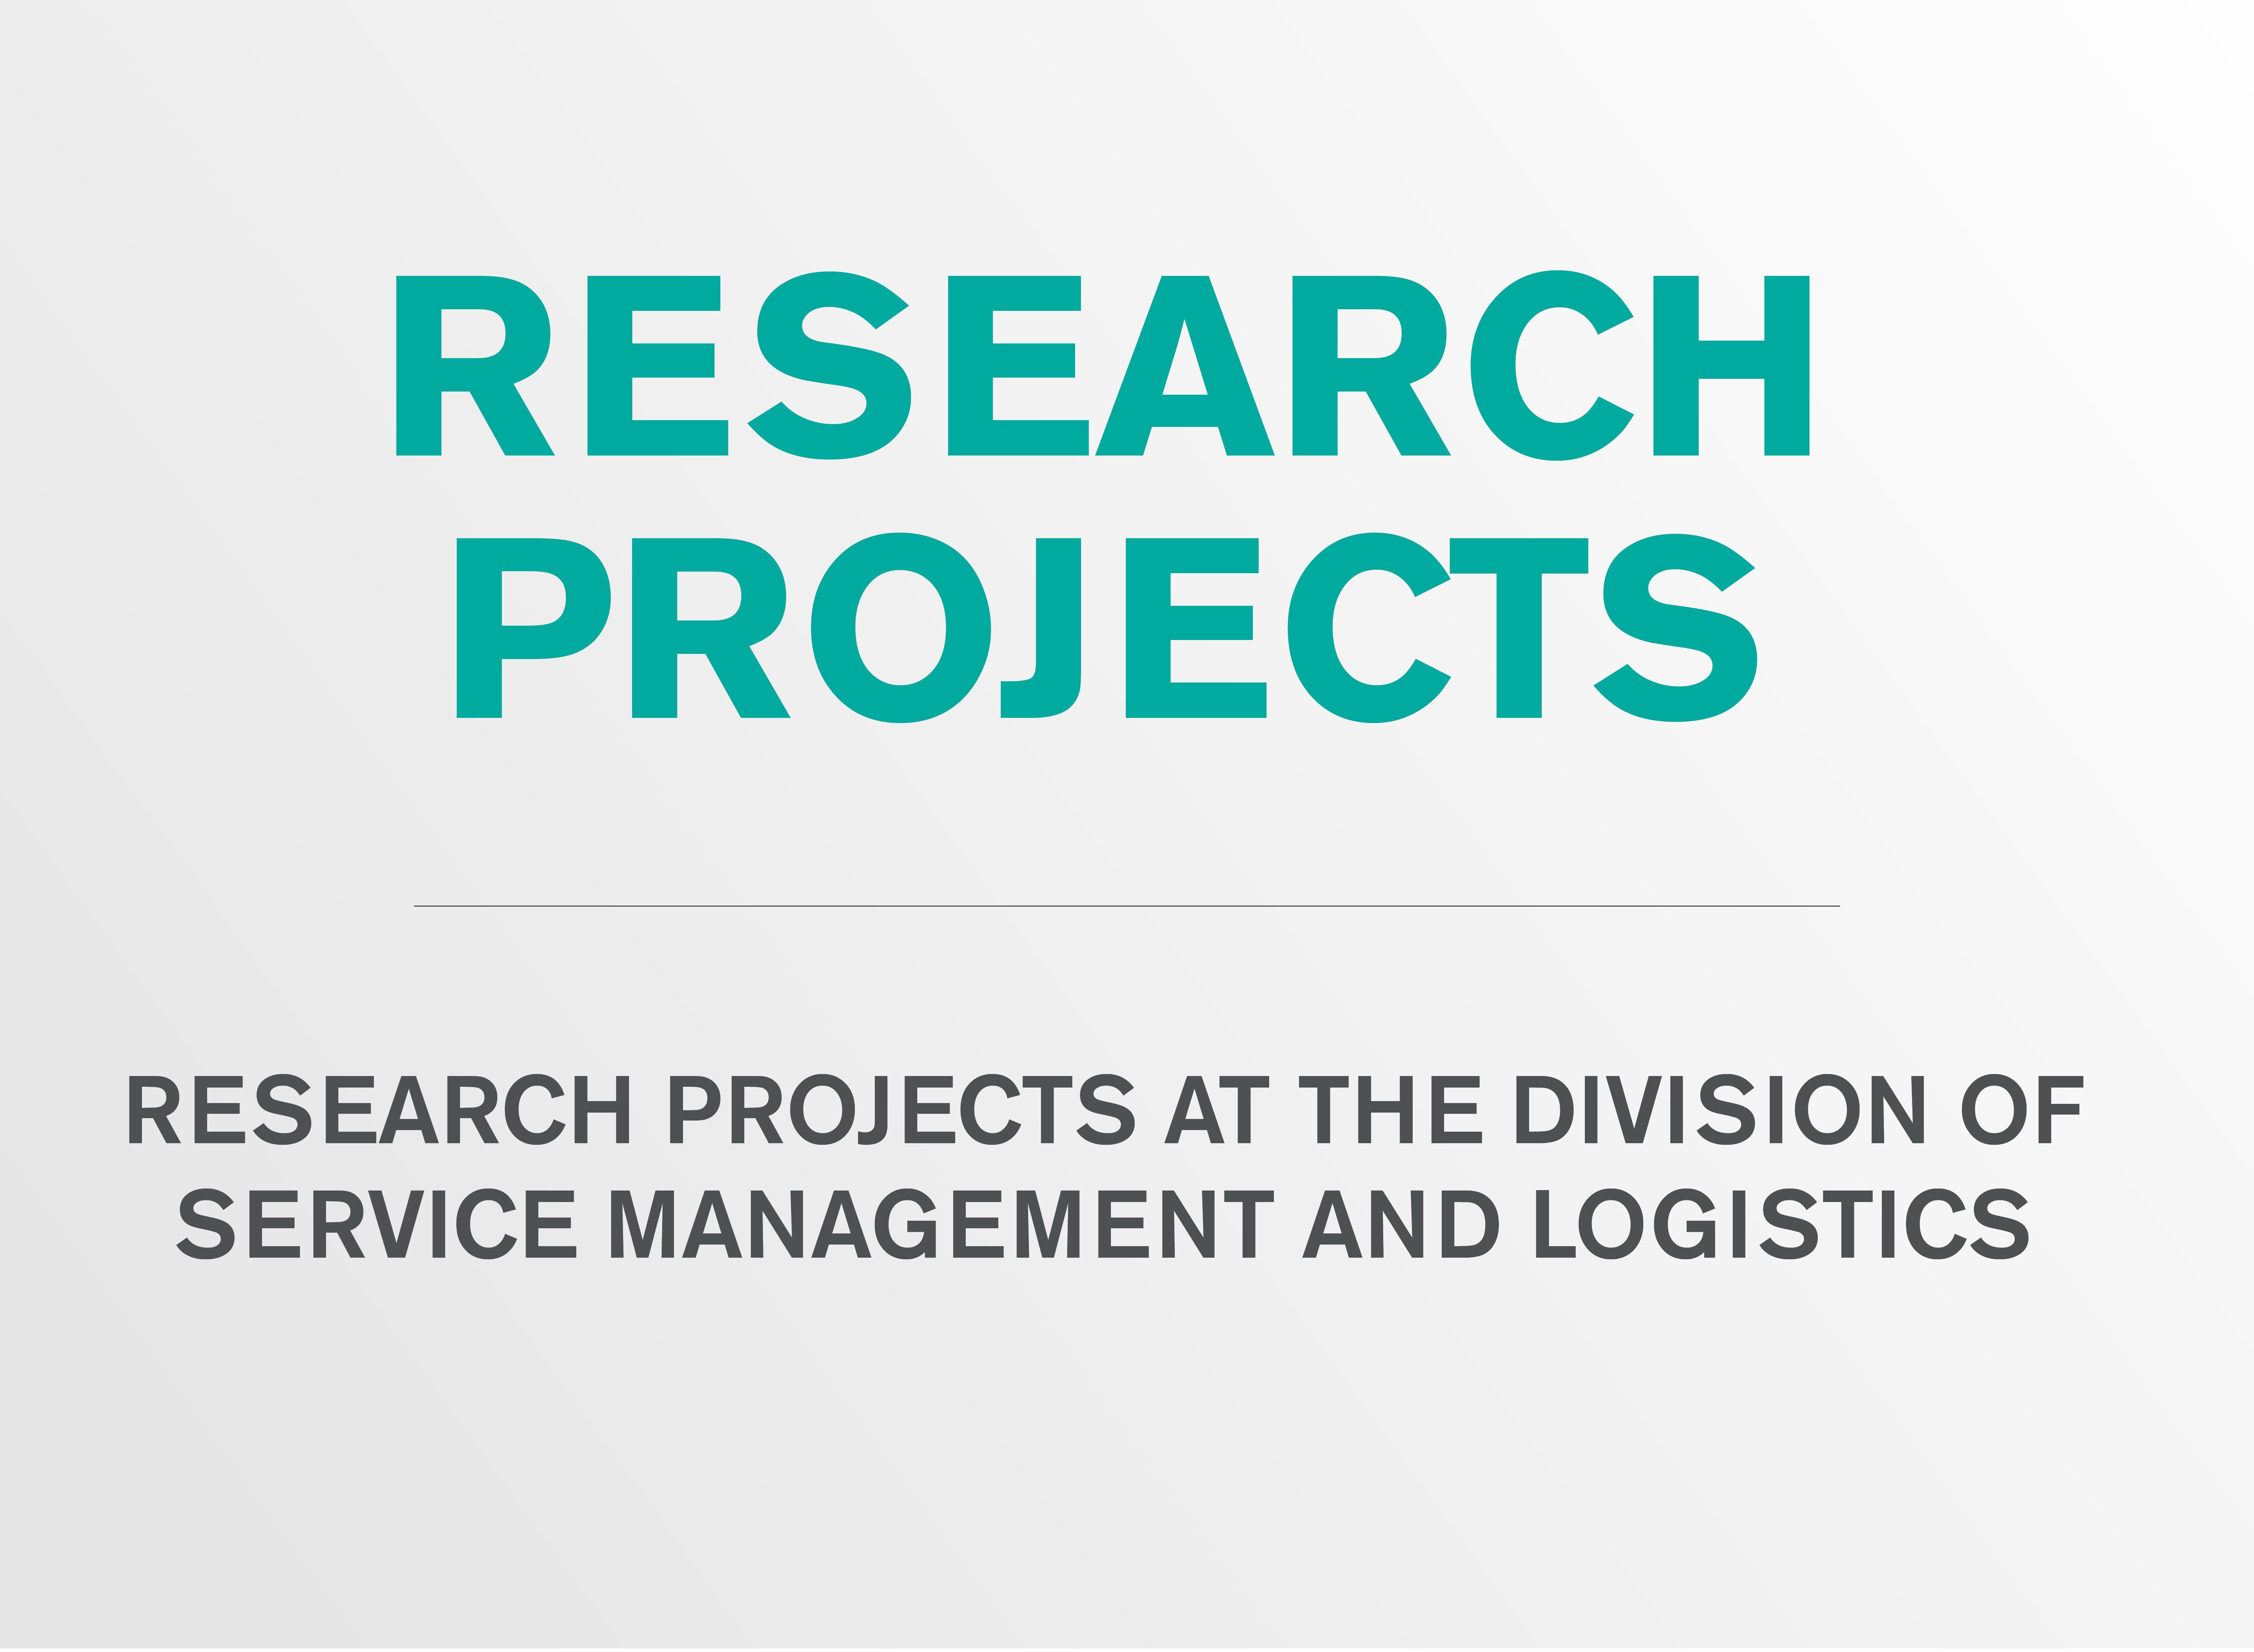 Research Projects at the division of Service Management and Logistics.